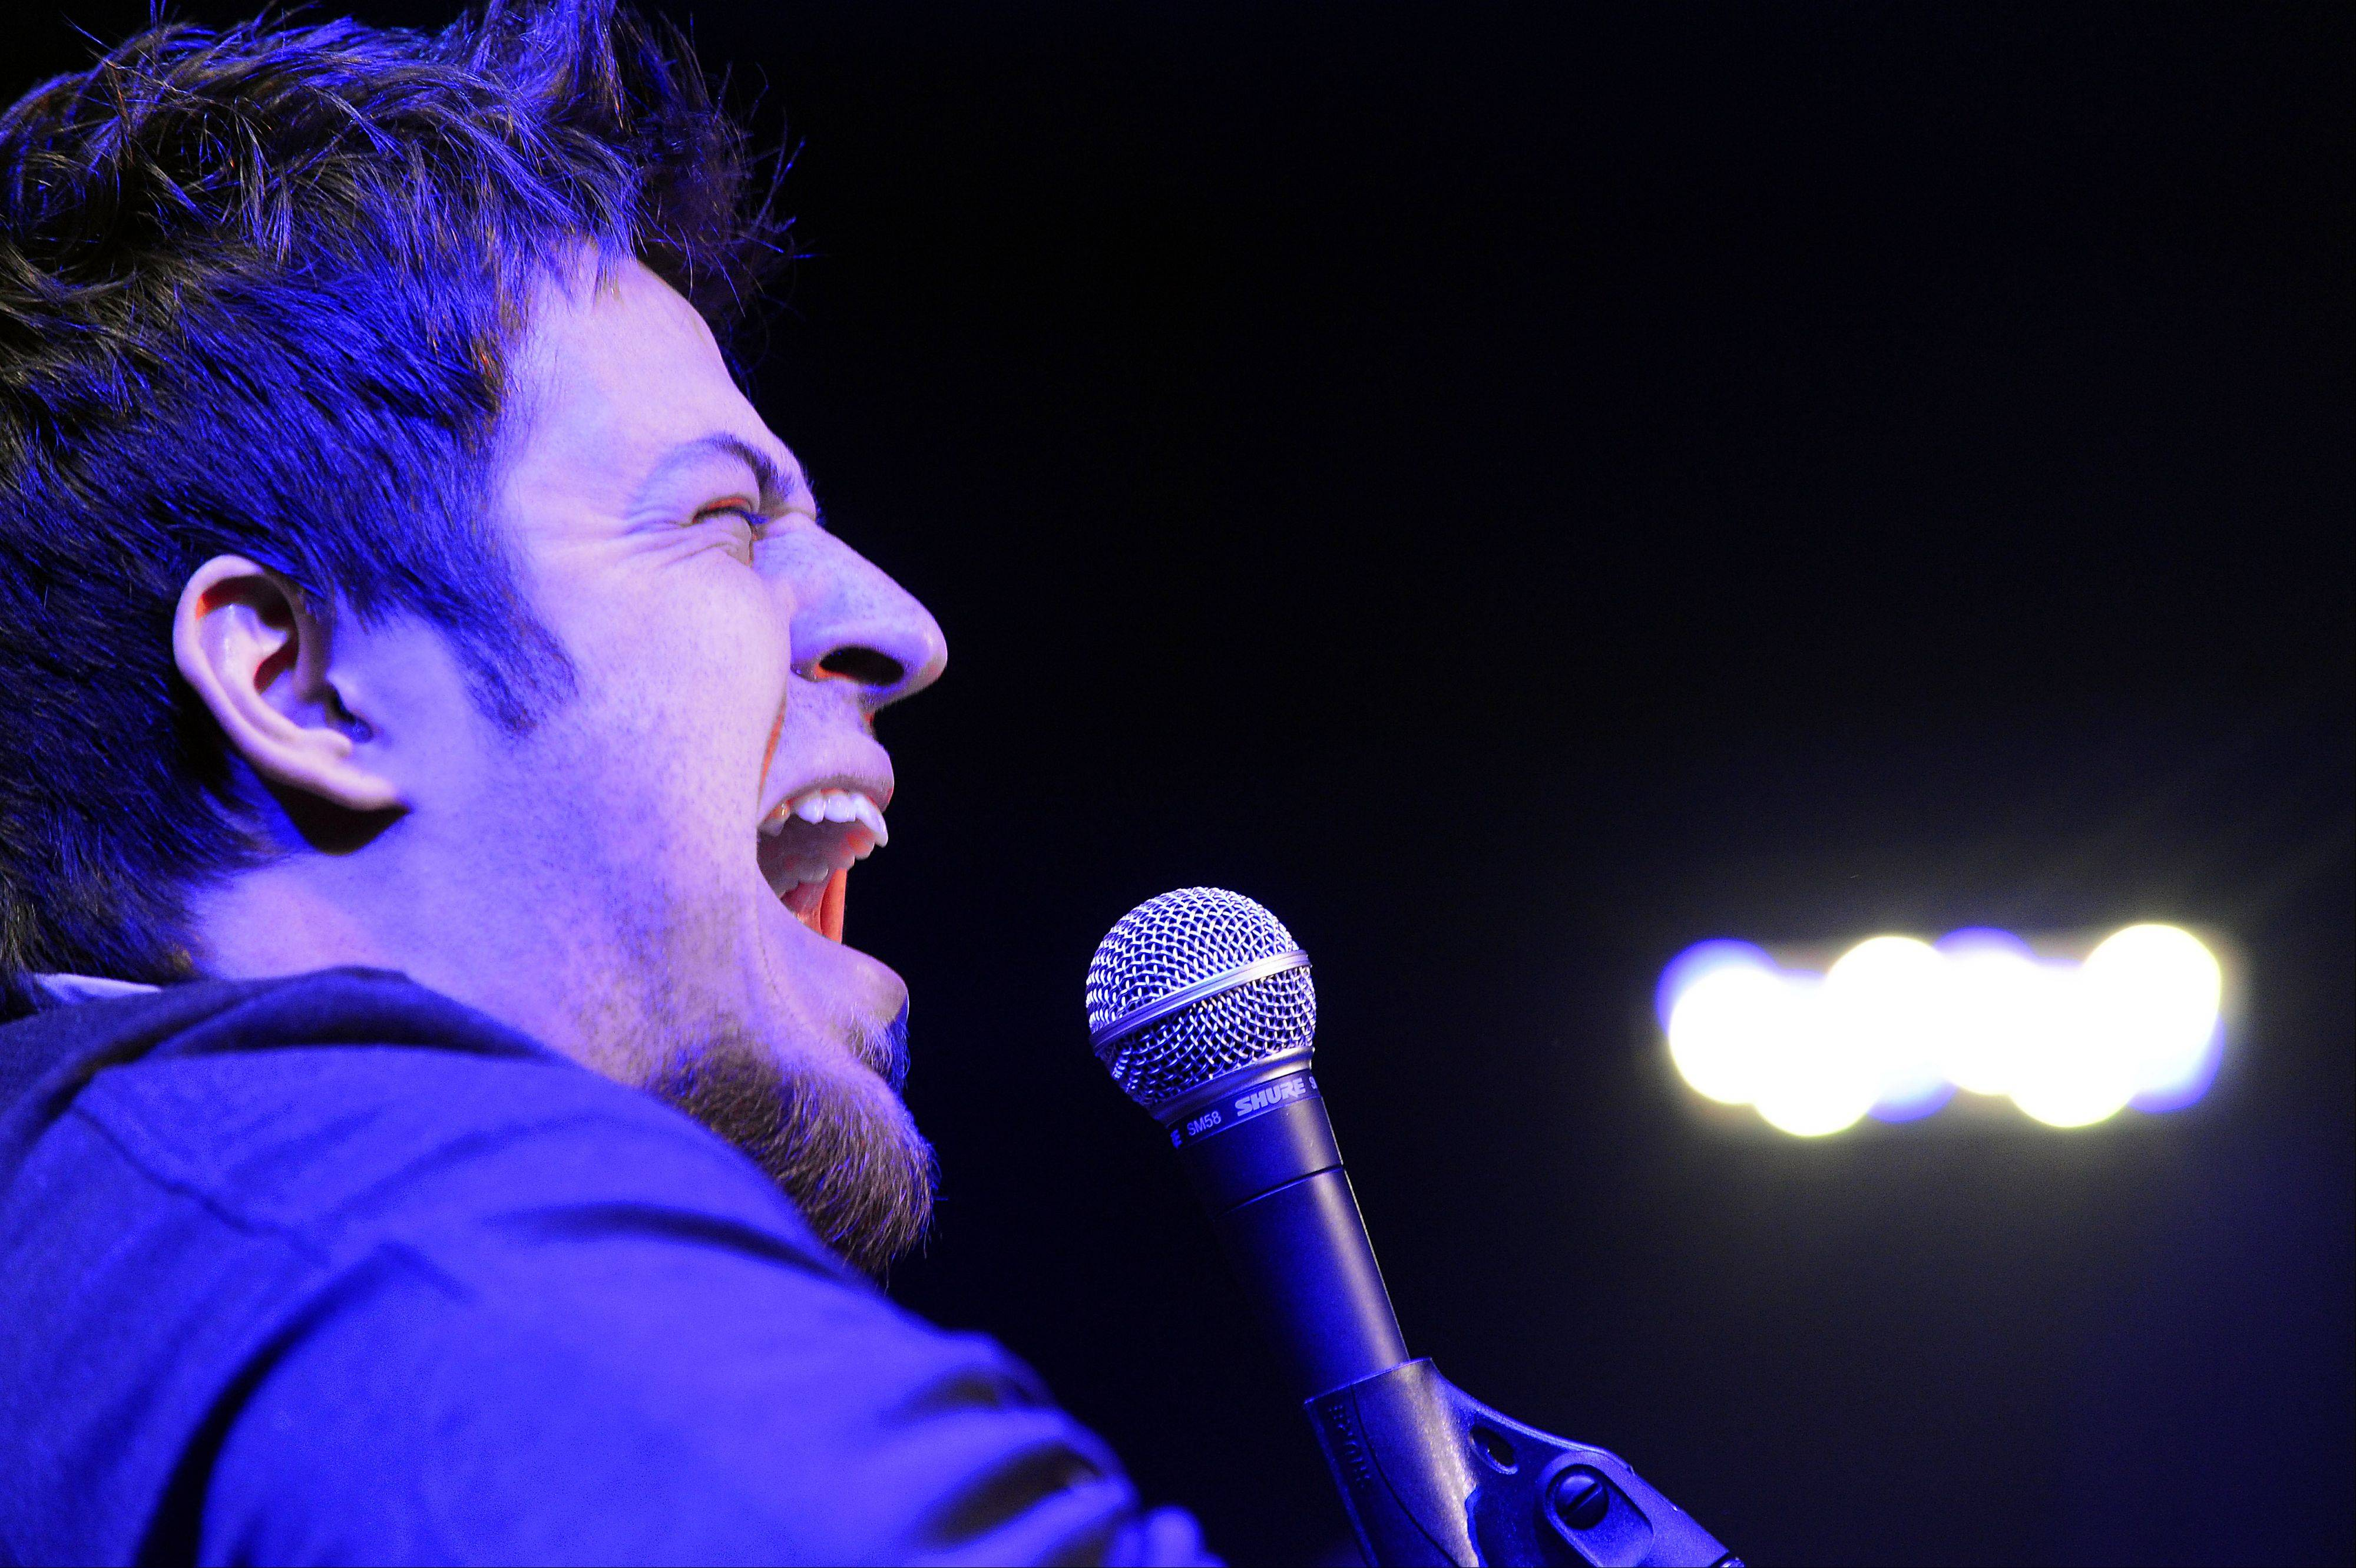 Lee DeWyze headlines Lincolnshire's Viper Alley on Friday, April 19.